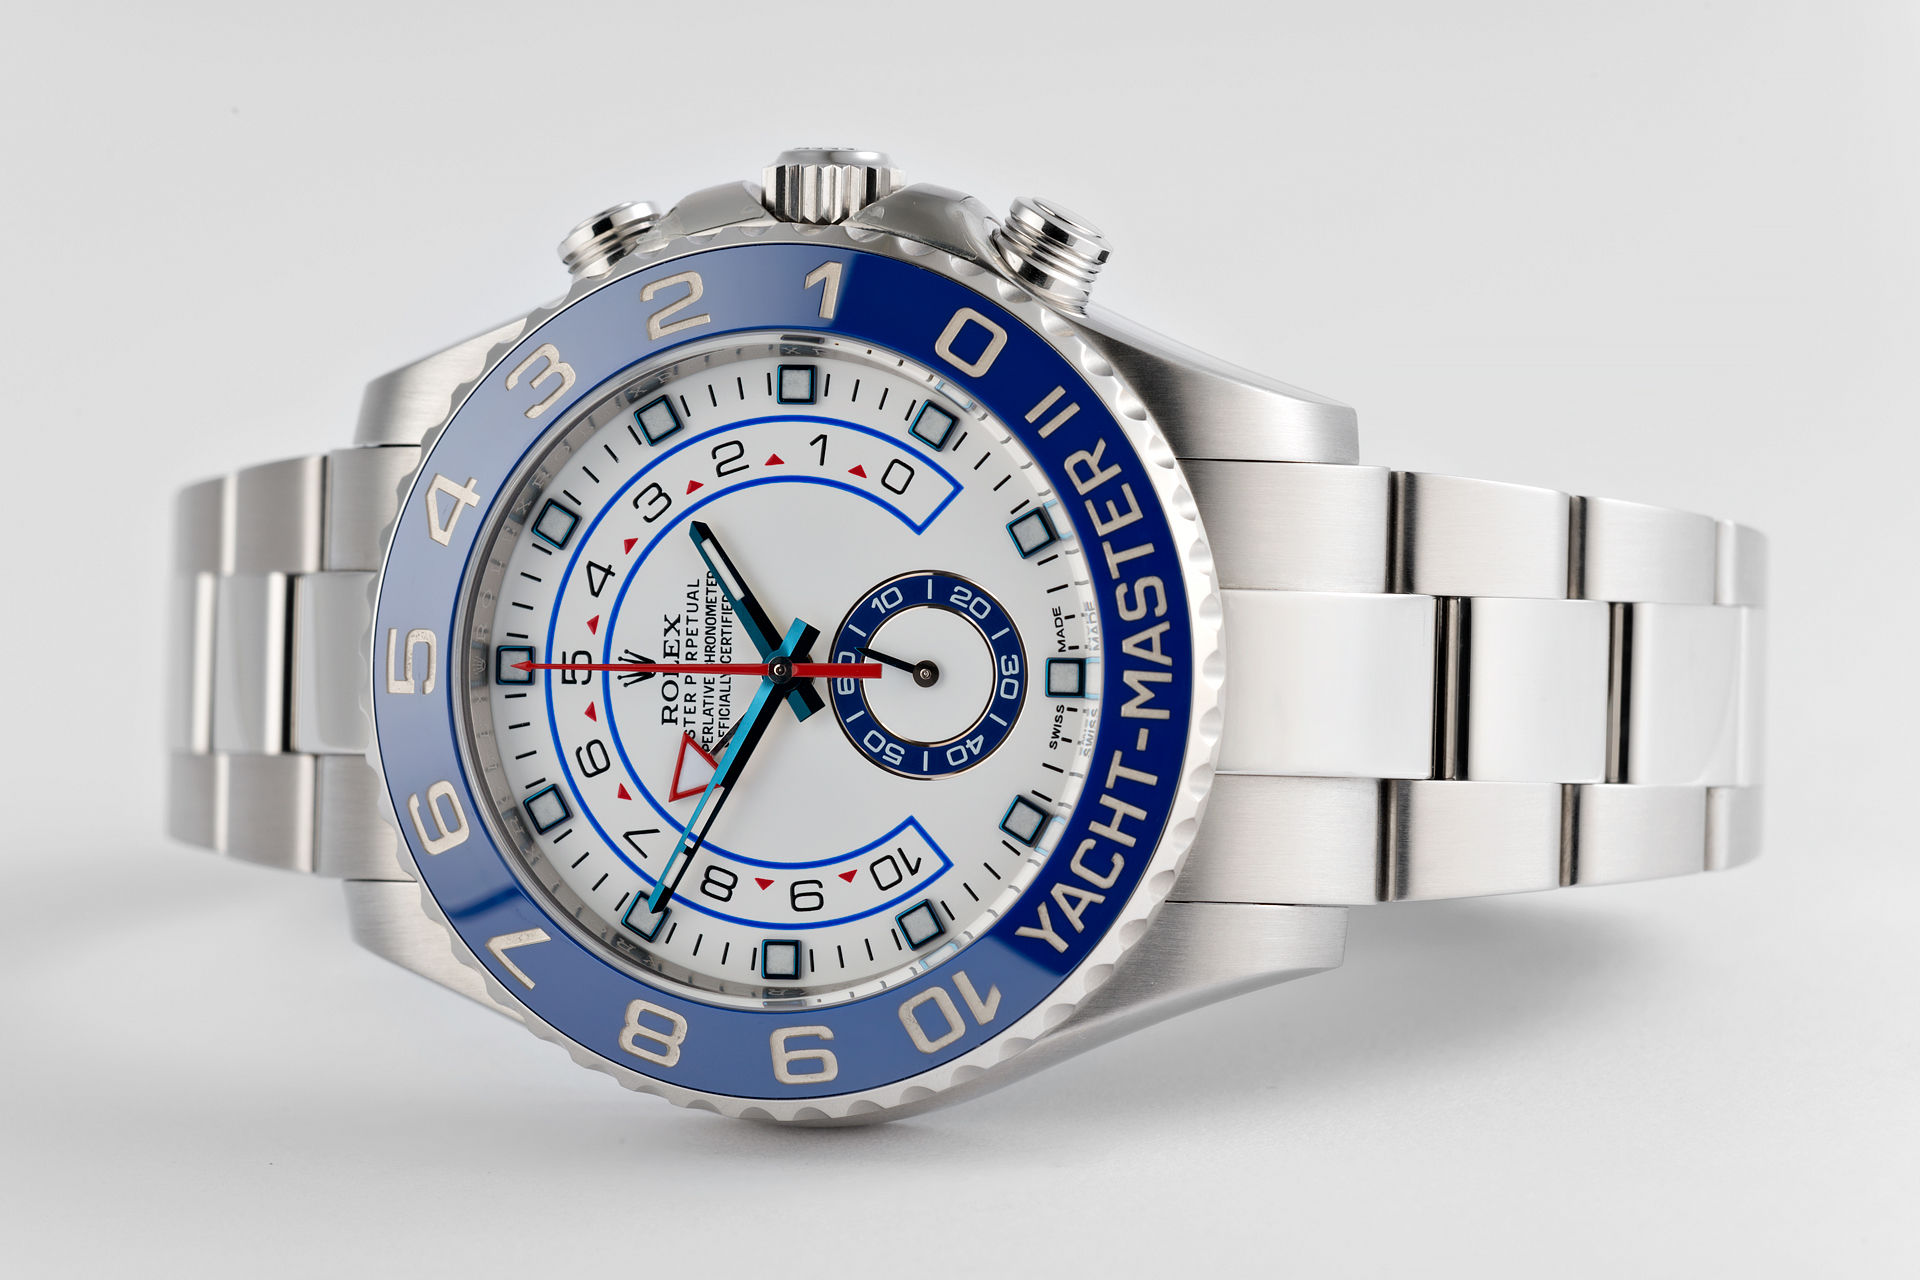 ref 116680 | 44mm '5 Year Warranty' | Rolex Yacht-Master II